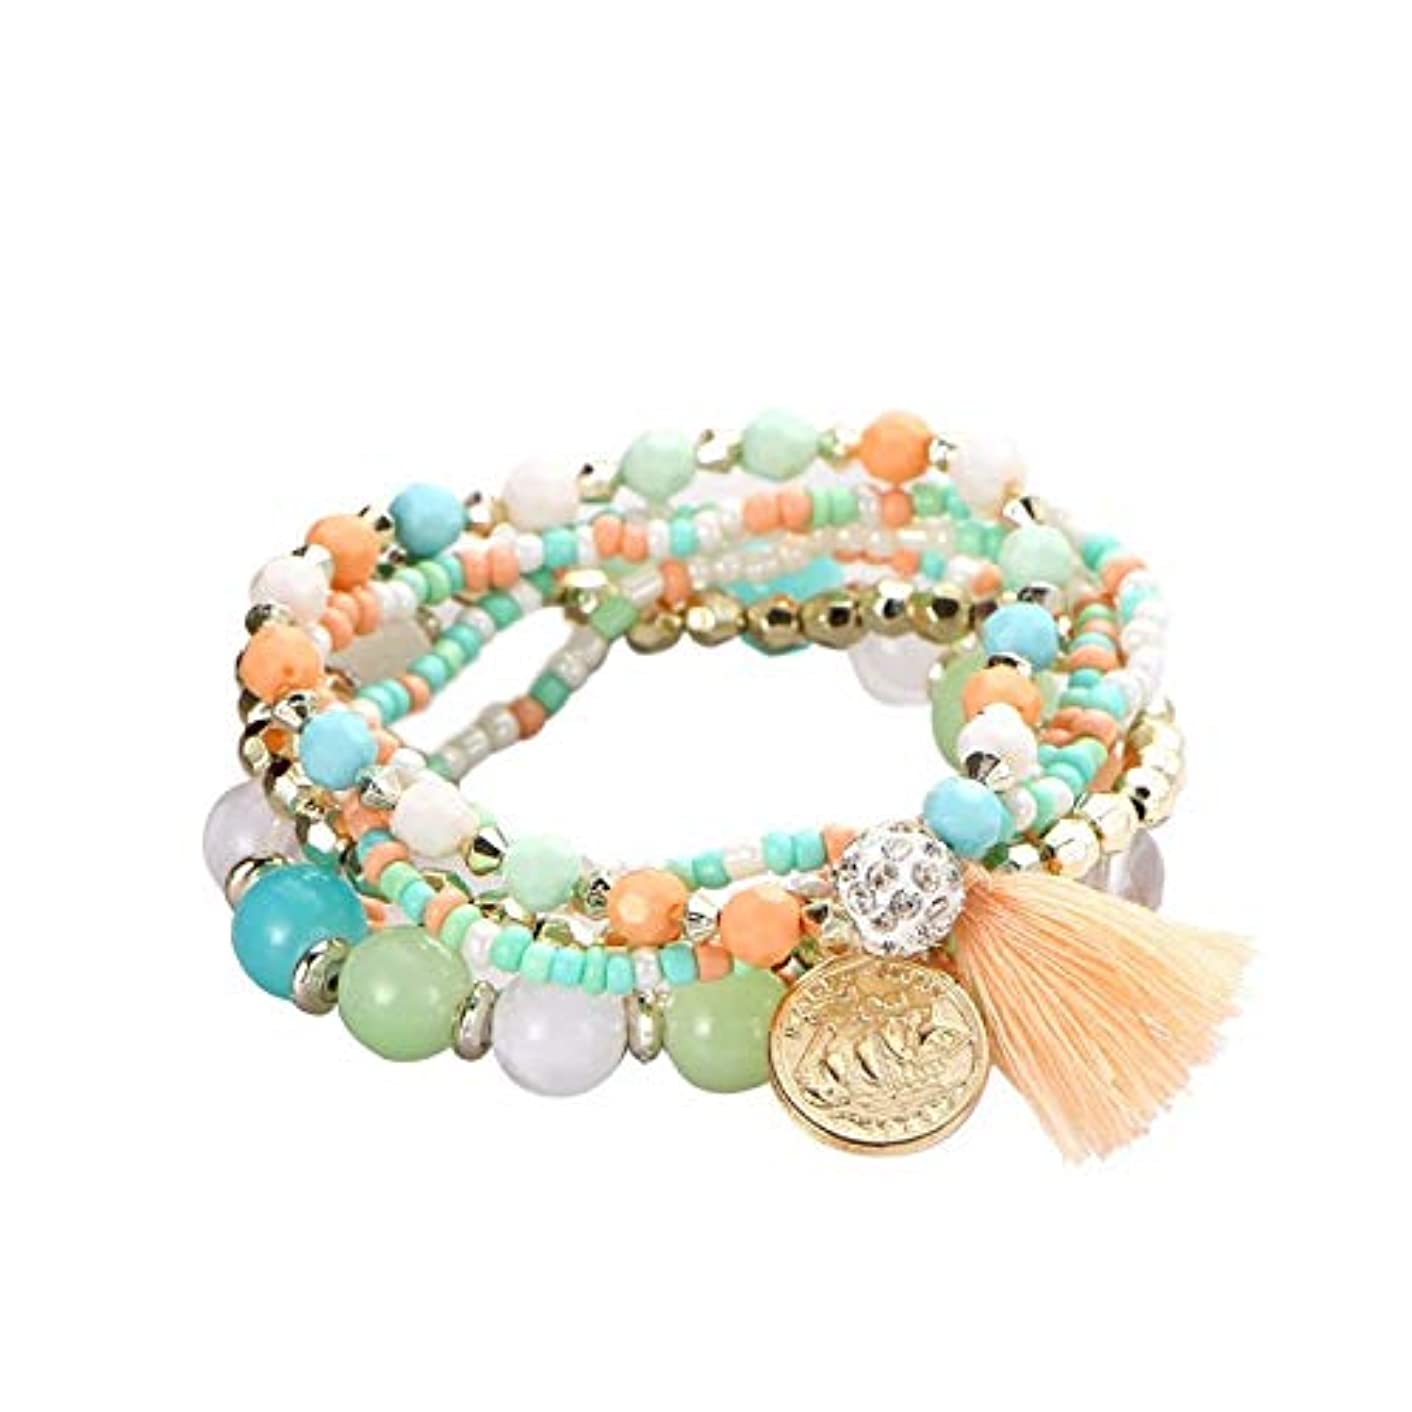 Qian Qian Fashion Bohemian Crystal Multicolor Beads Fringed Woven Coin Bracelet Adjustable Elastic Man Woman